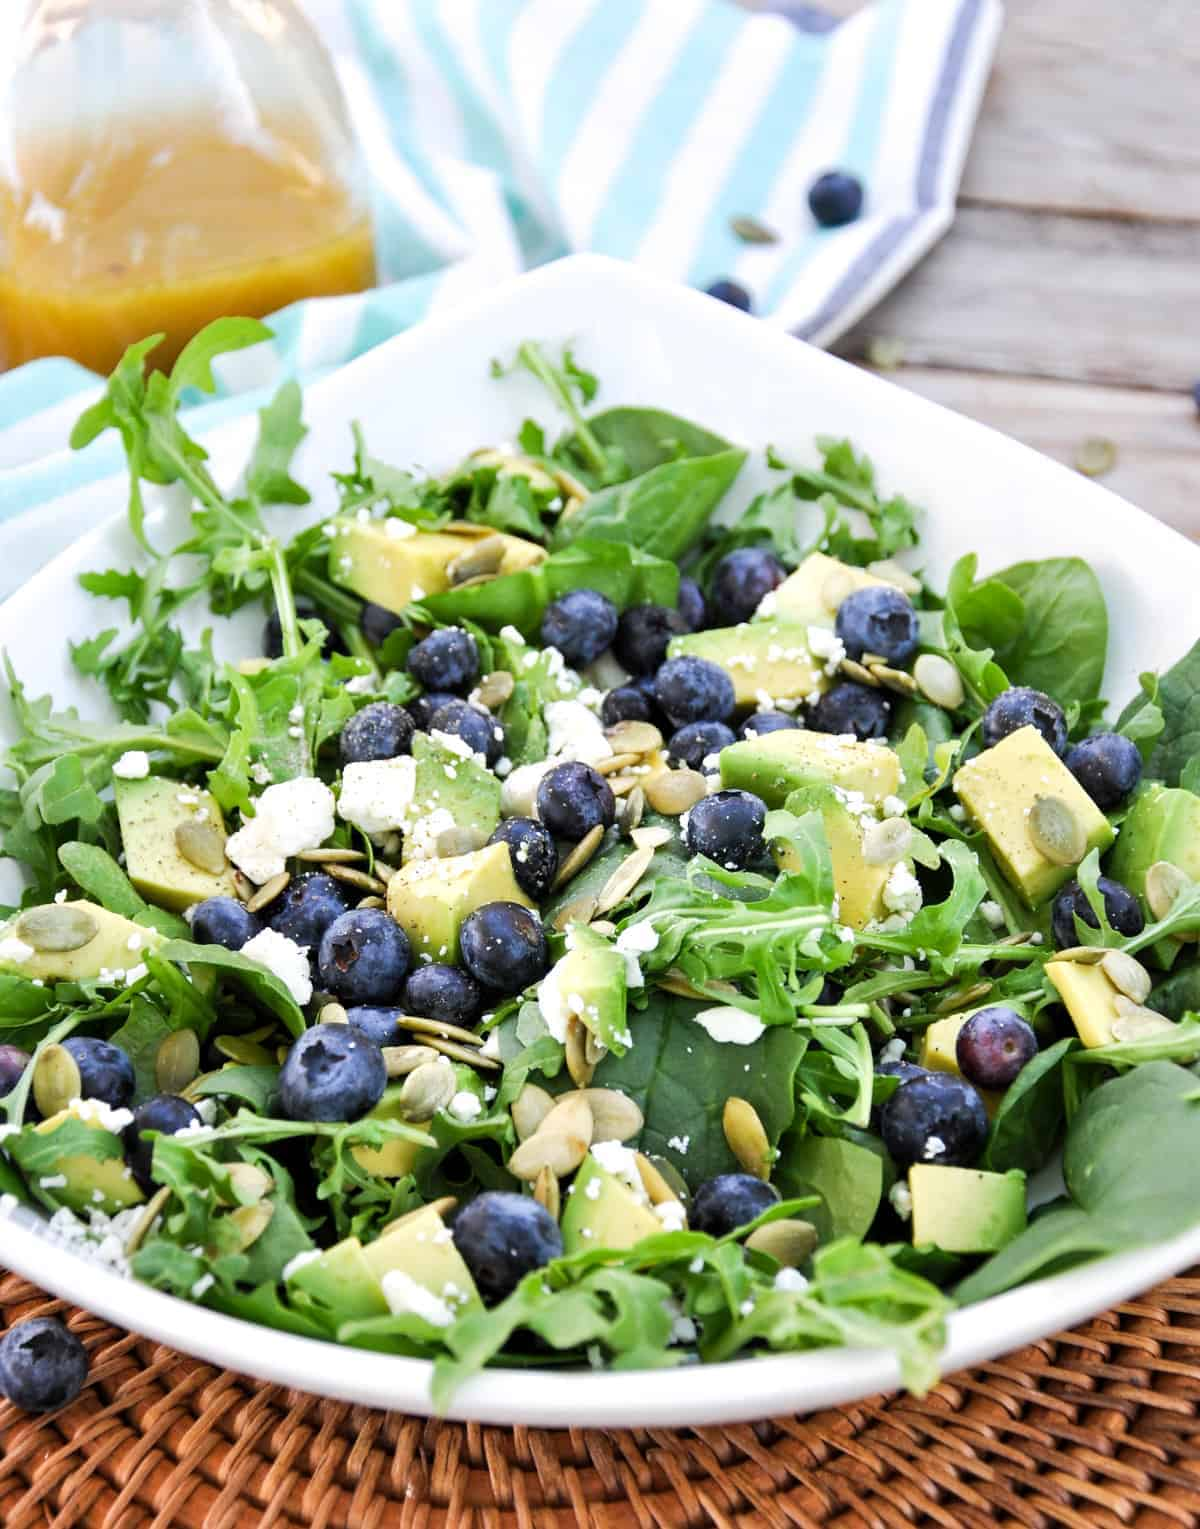 Blueberry and Spinach Salad